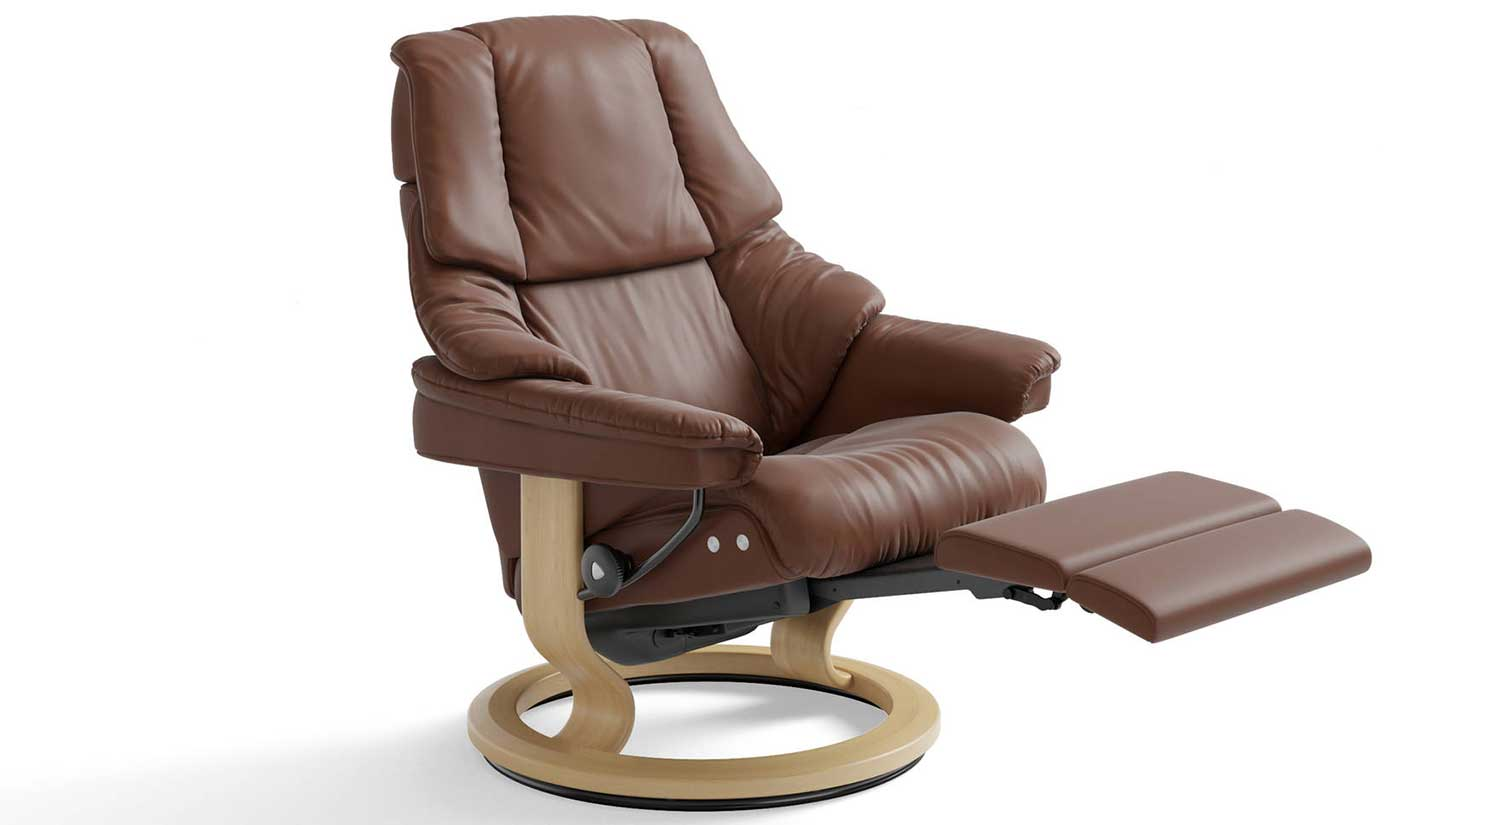 Reno Stressless Recliner with Leg Comfort